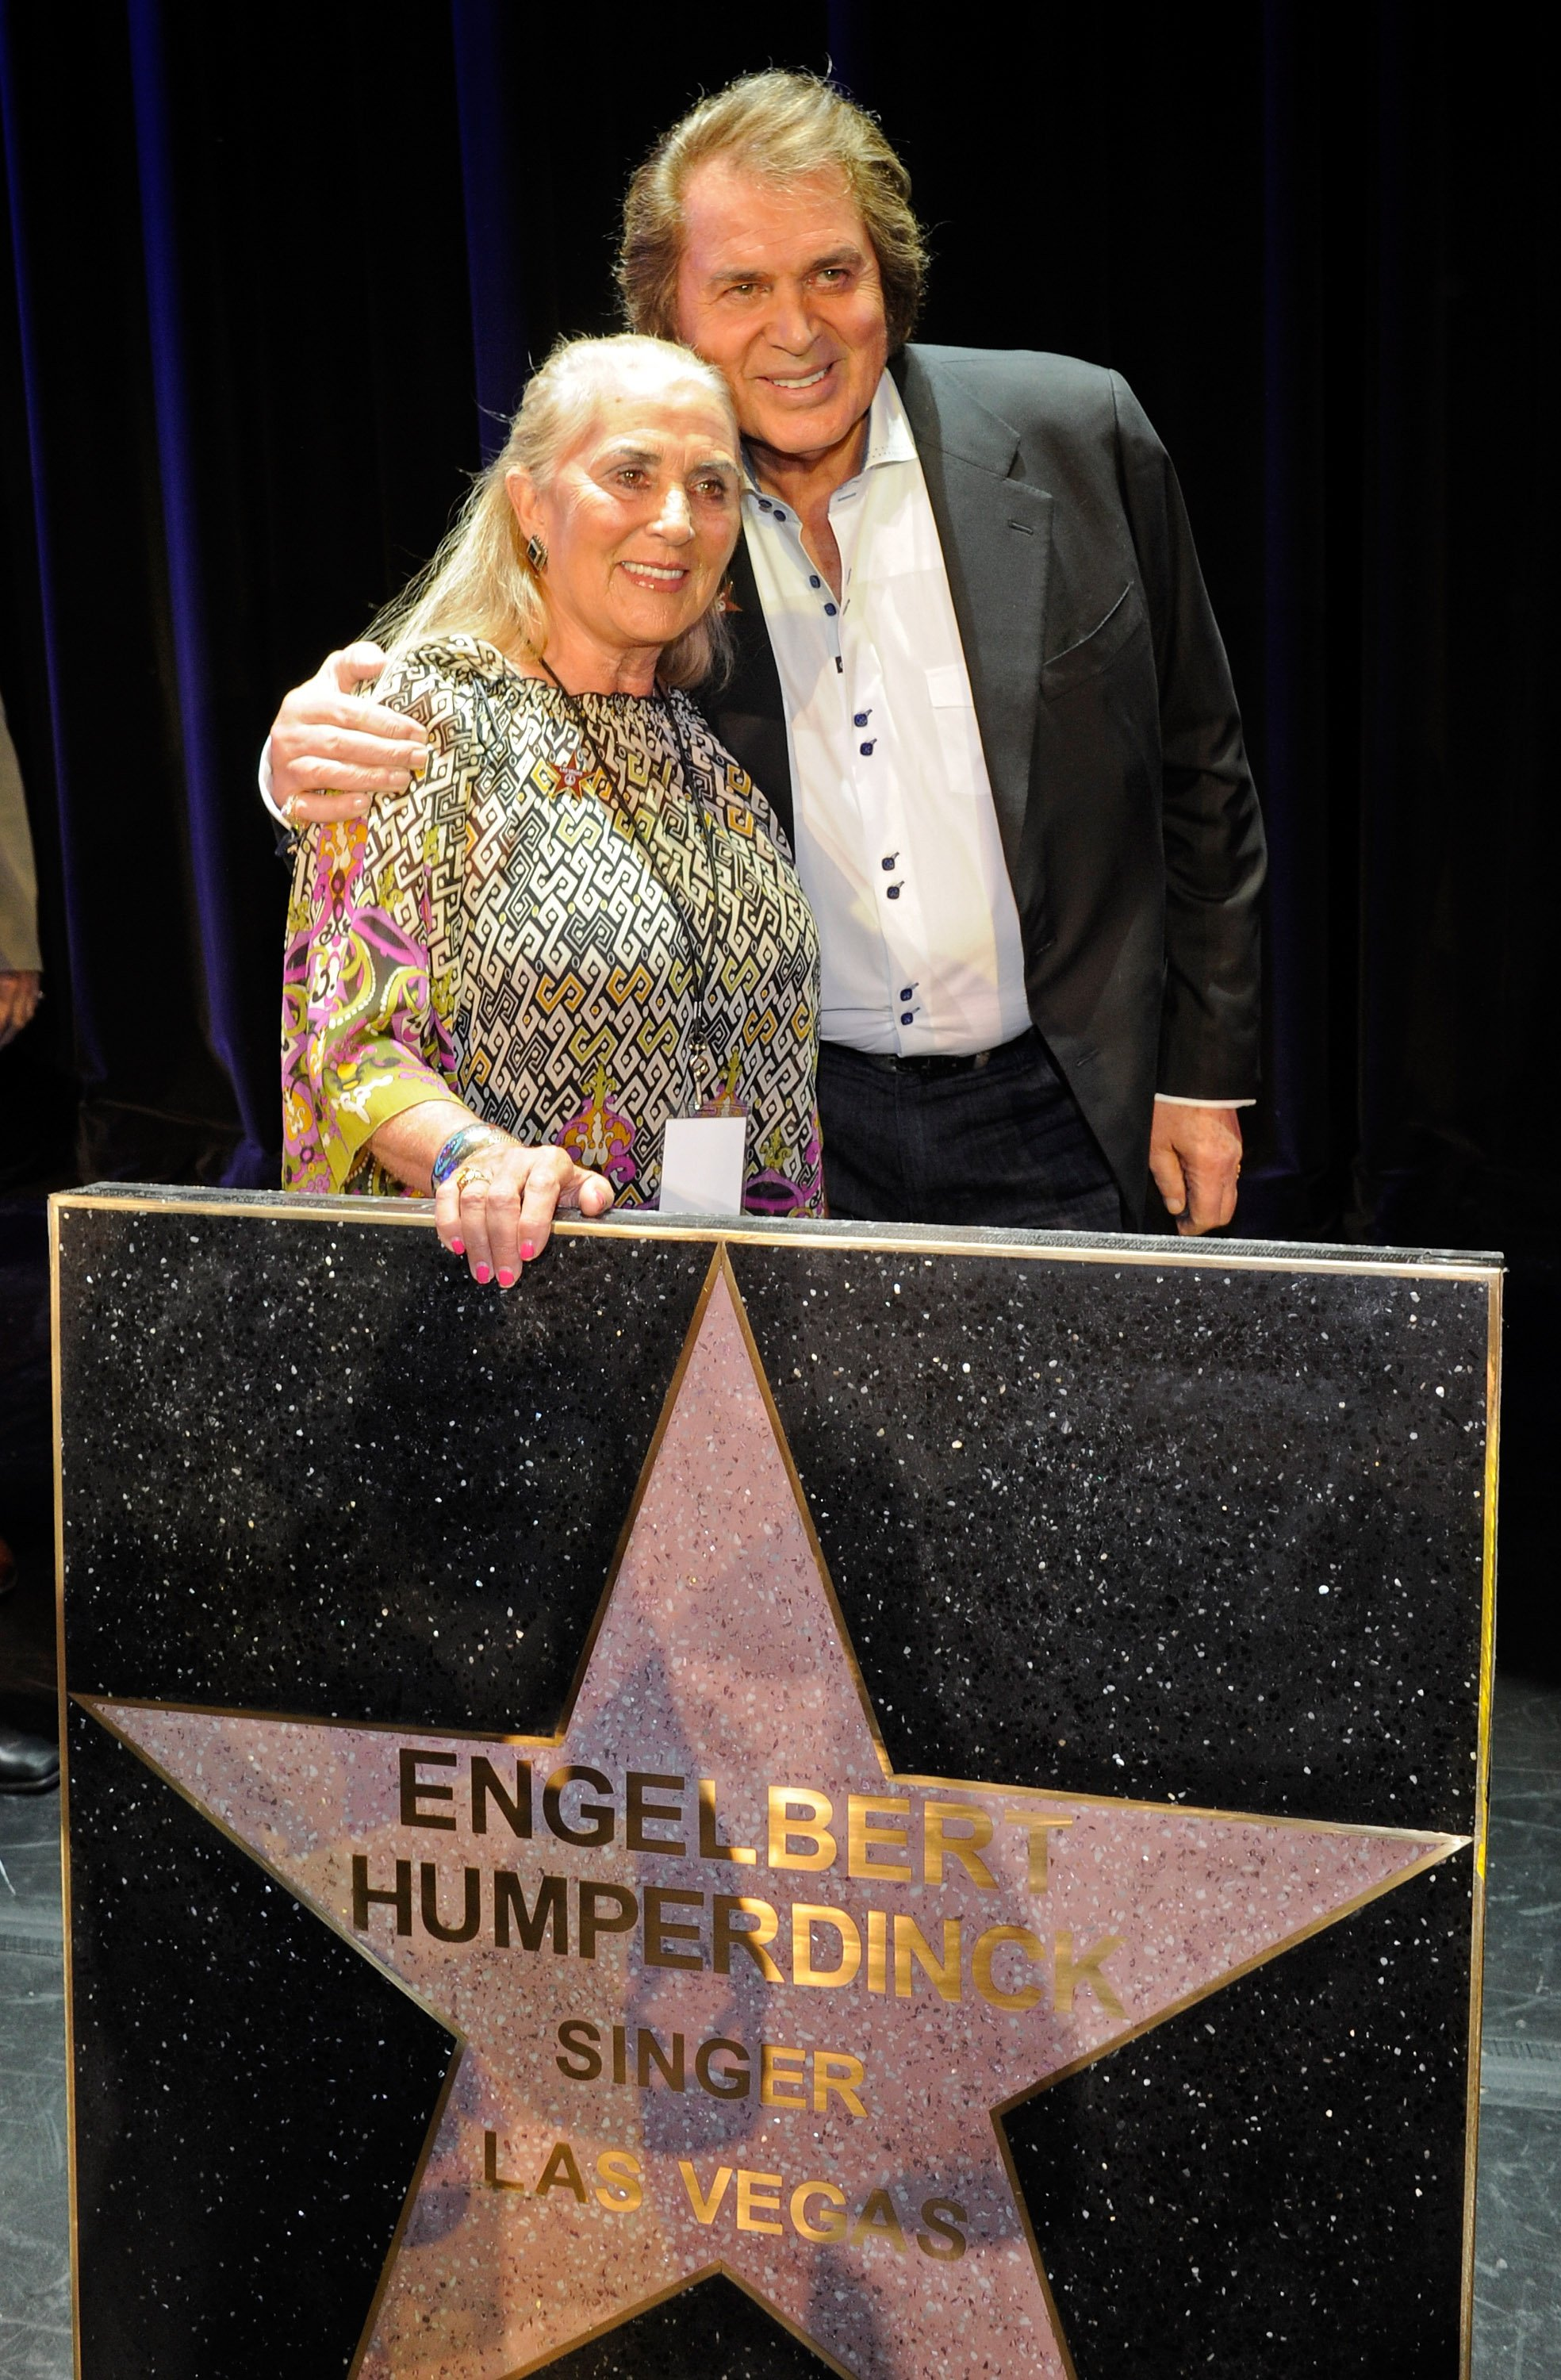 Englebert Humperdinck and his wife Patricia Healey attend the Las Vegas Walk of Stars dedication for the singer in Las Vegas, Nevada on July 20, 2011 | Photo: Getty Images